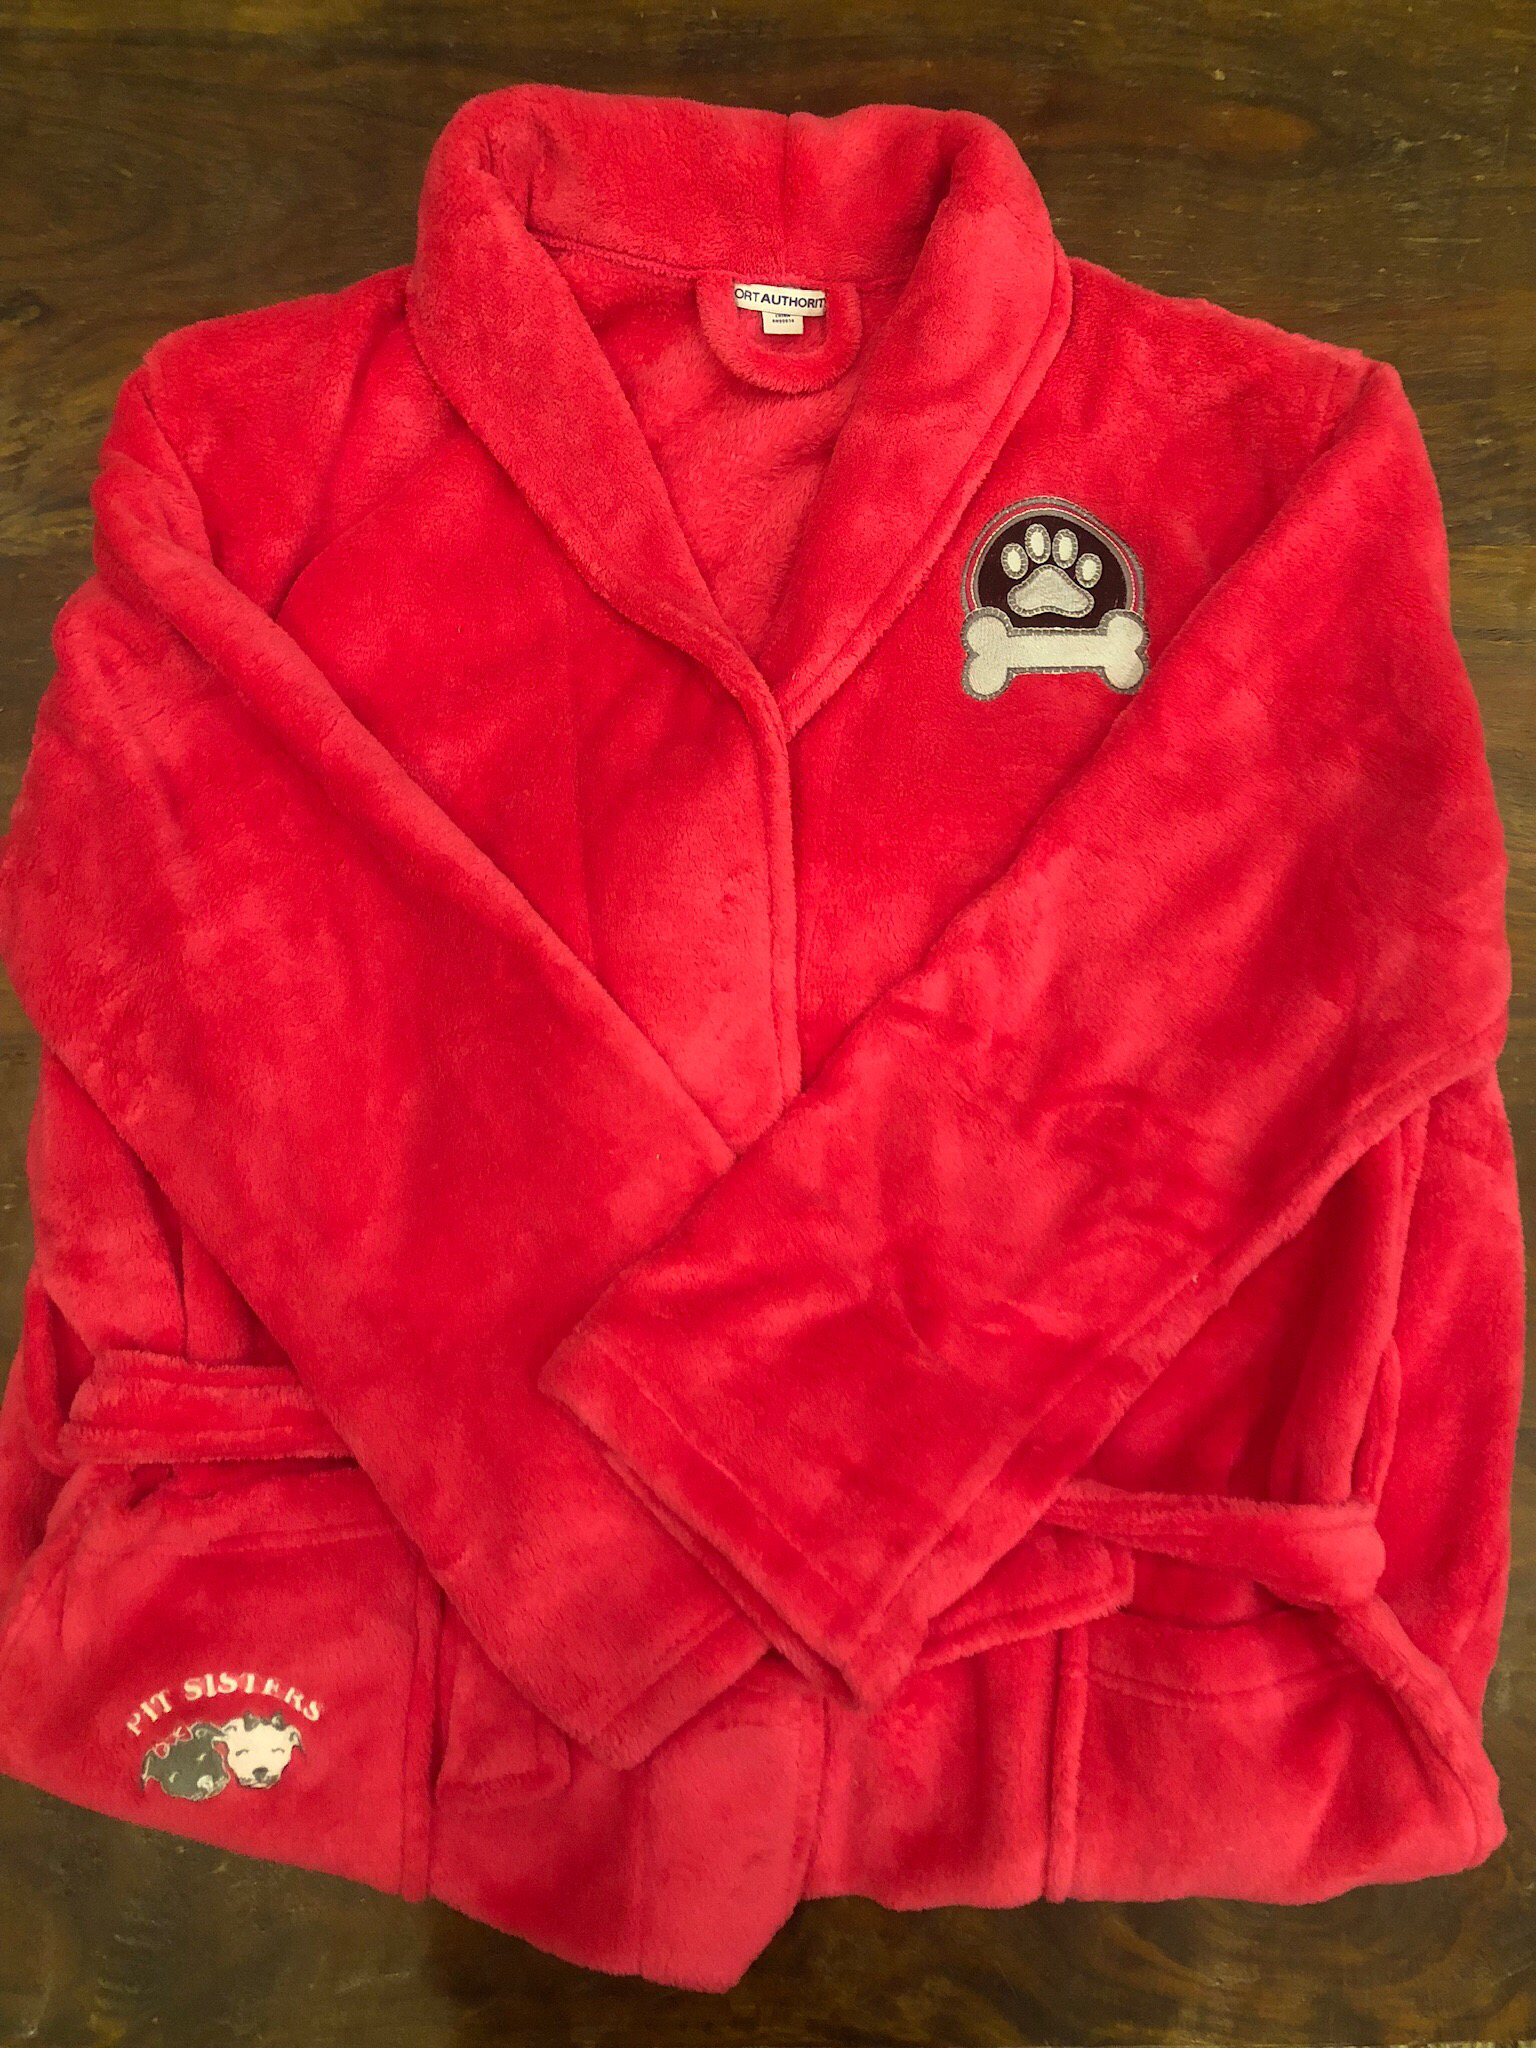 Bath robe: Pink with Silver paw- L/XL 55704